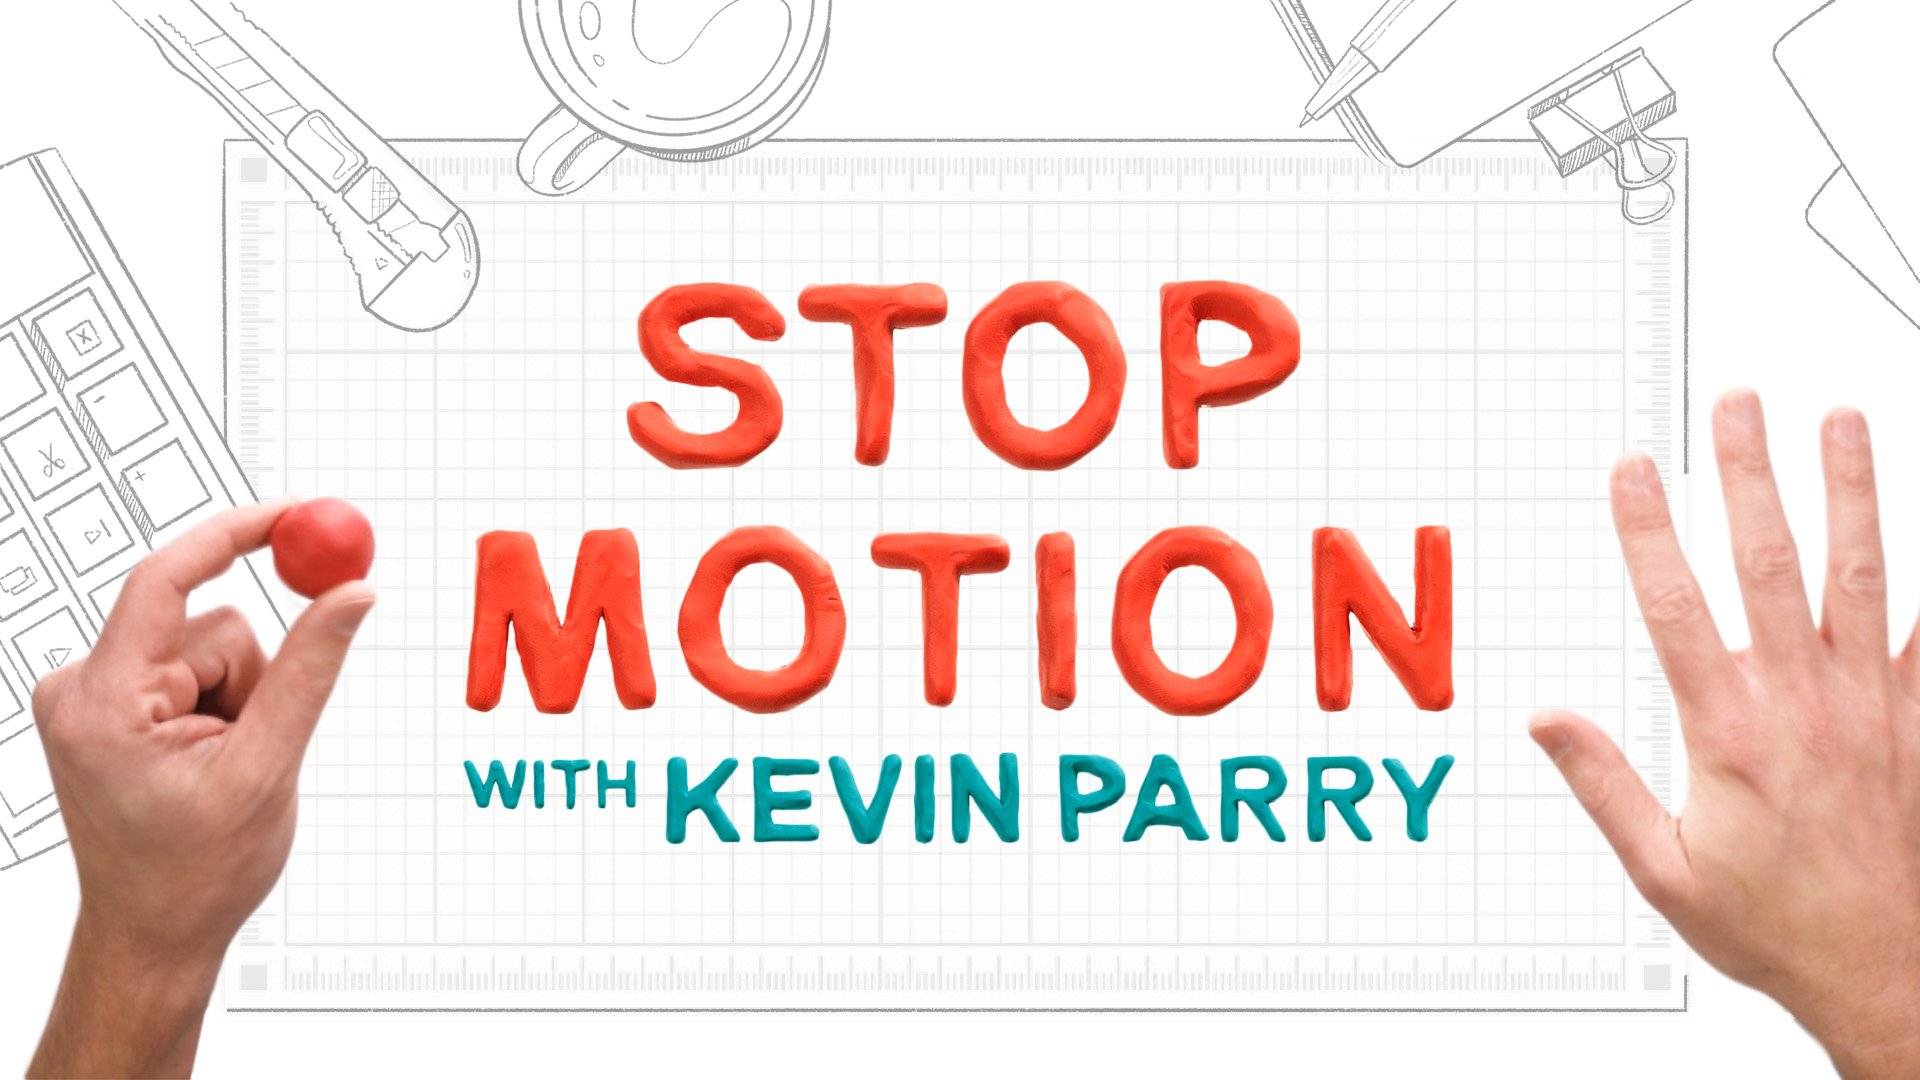 Stop Motion with Kevin Parry